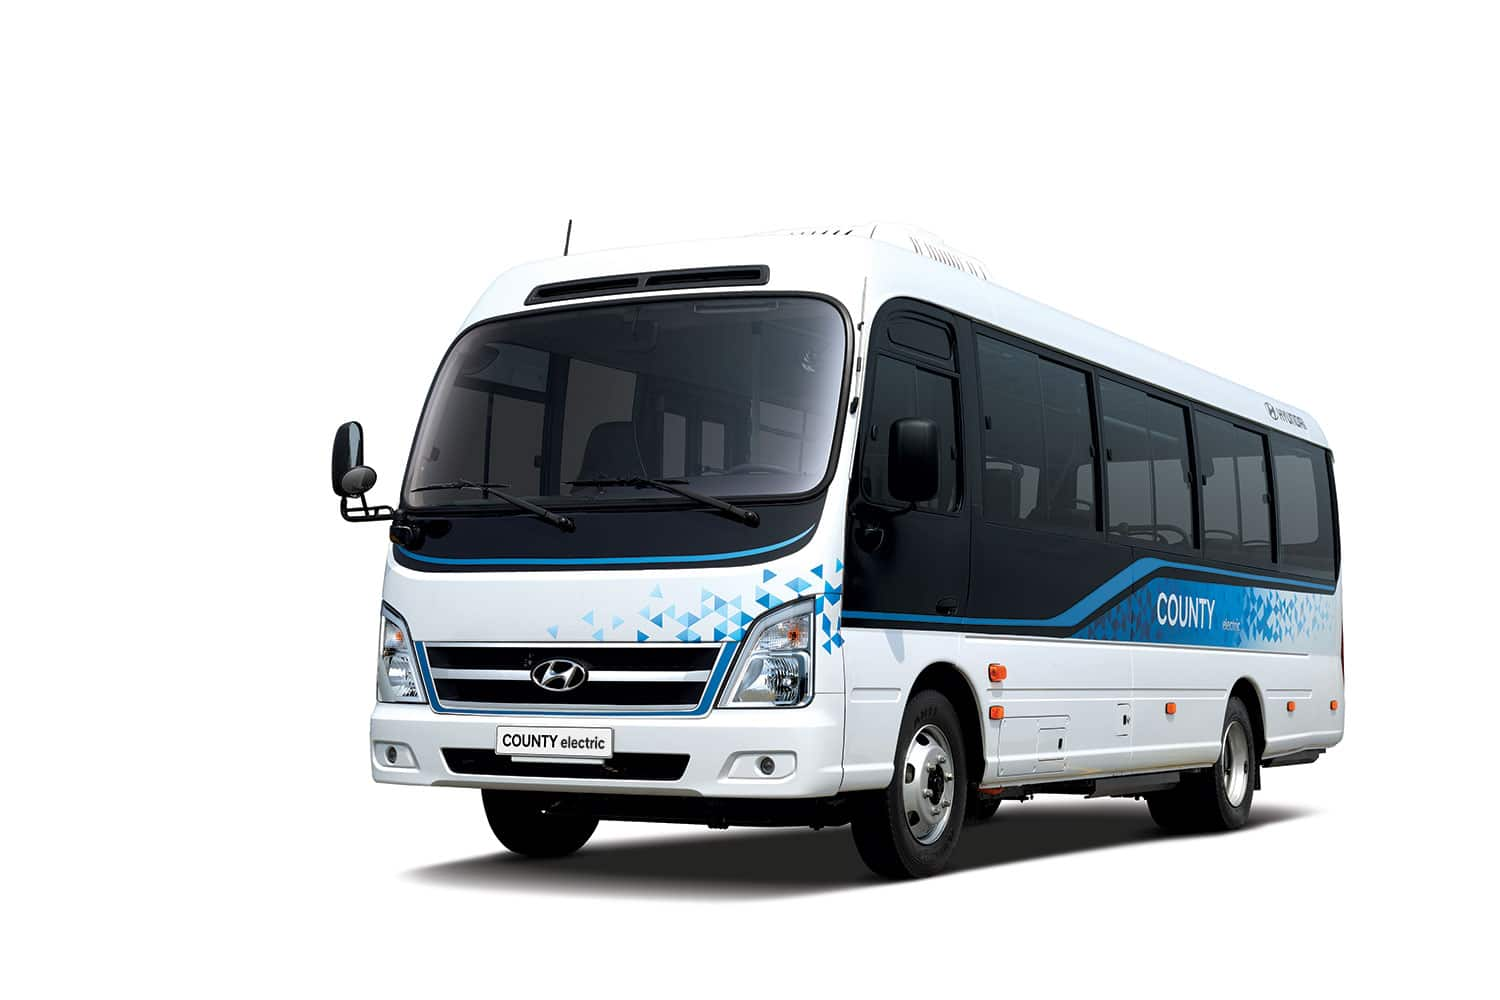 County Electric, Hyundai's first electric minibus with 250 km of autonomy